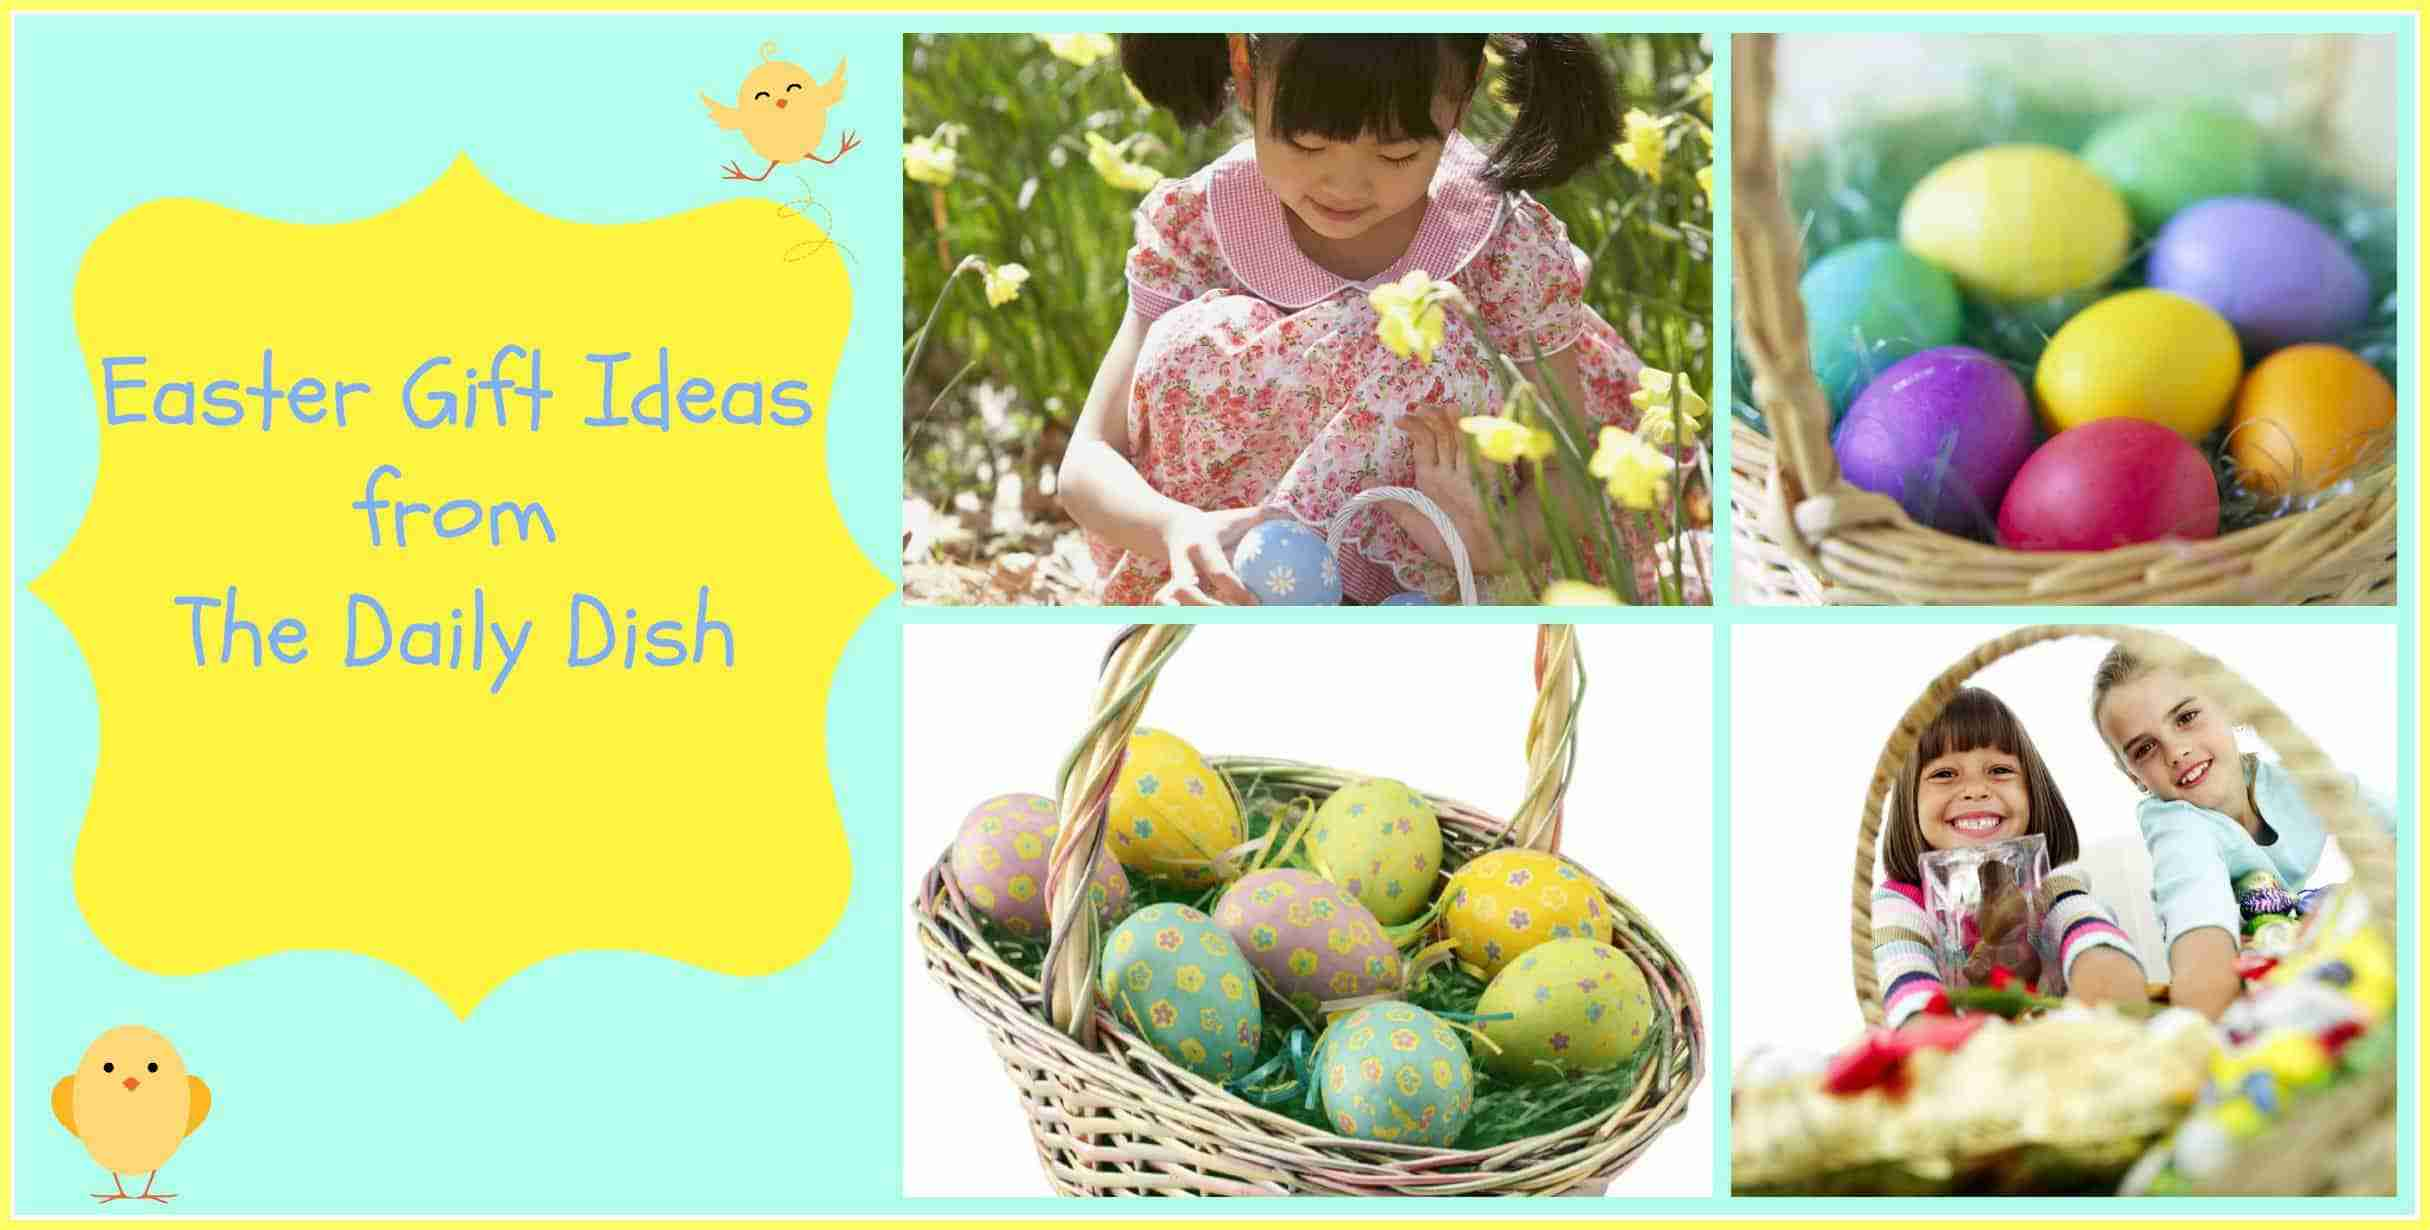 Easter gift ideas for kids daily dish magazine recipes easter gift ideas for kids daily dish magazine recipes travel crafts negle Image collections